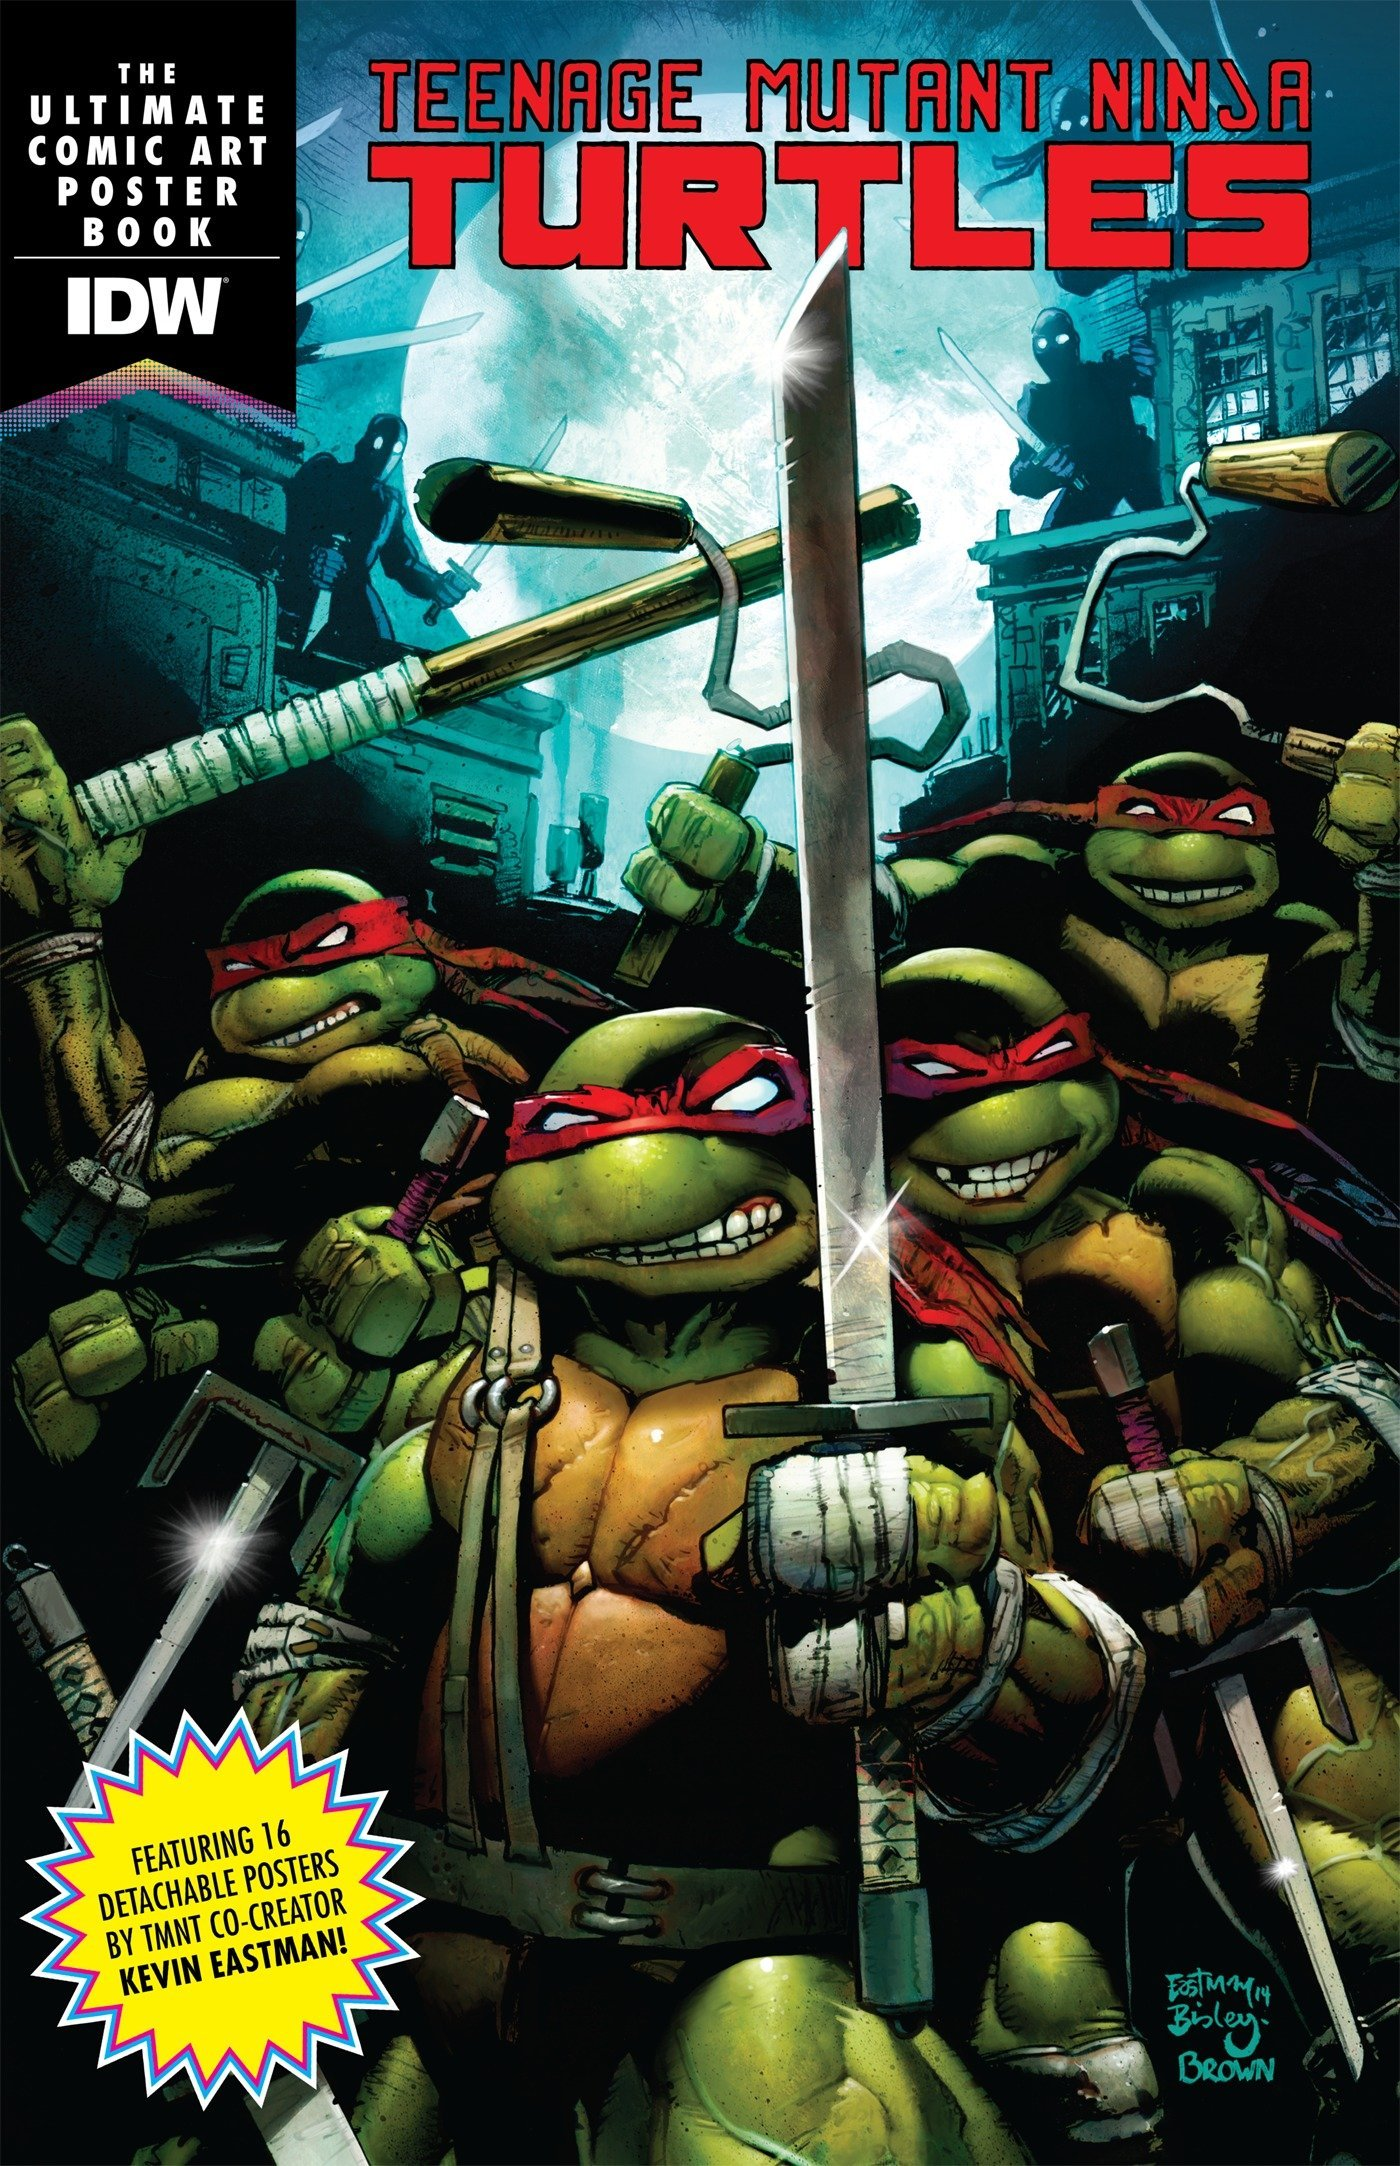 Amazon.com: Teenage Mutant Ninja Turtles Comic Art Poster ...